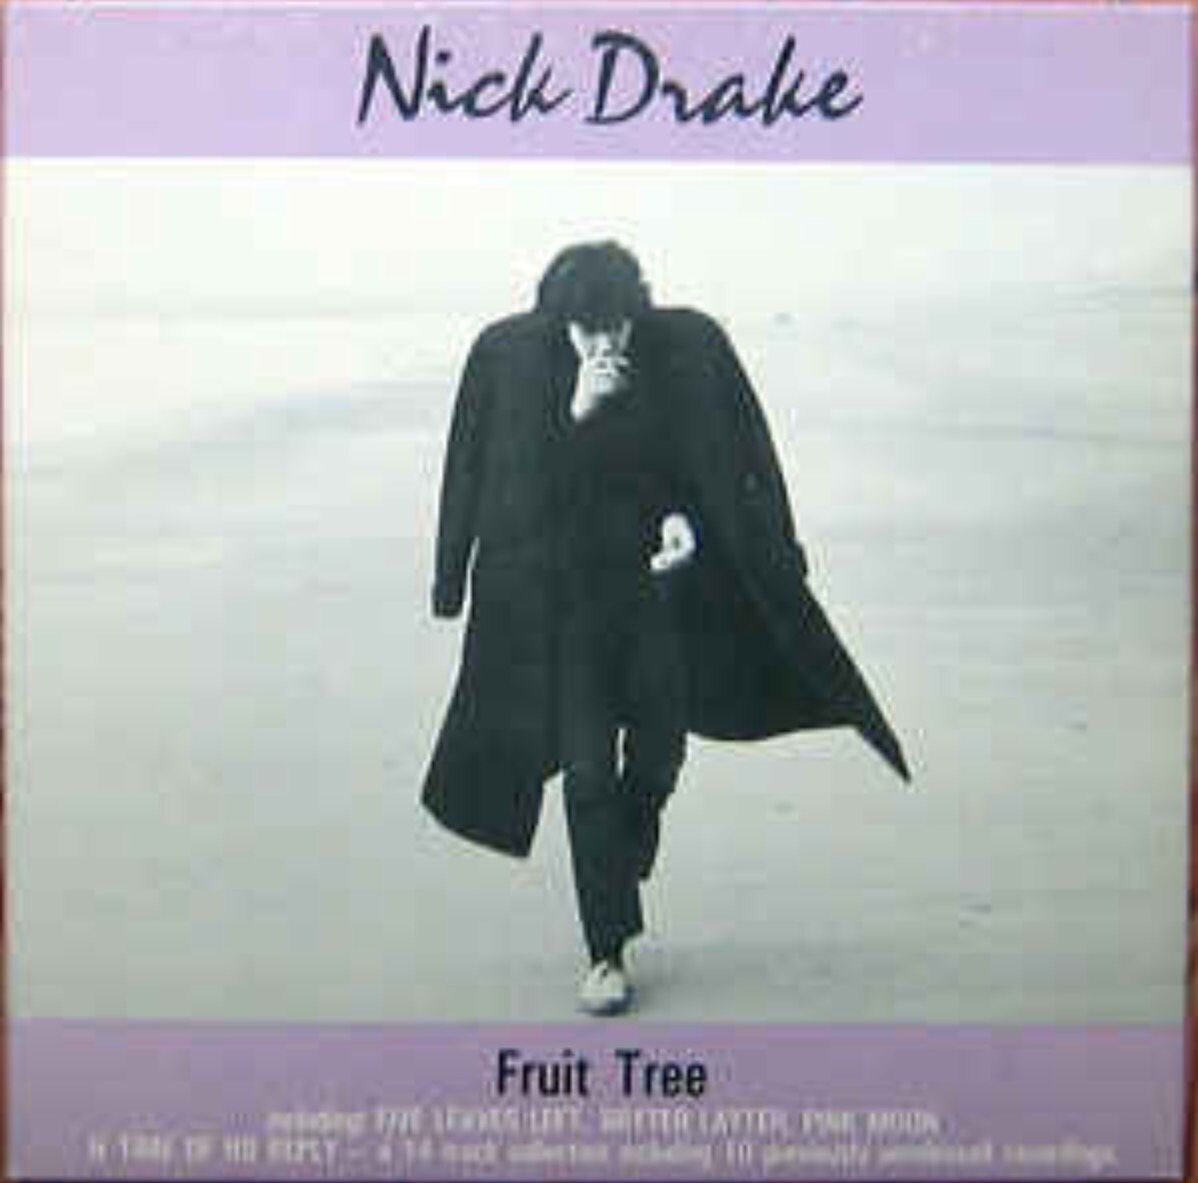 How To Buy Nick Drake On Vinyl Every Record Tells A Story